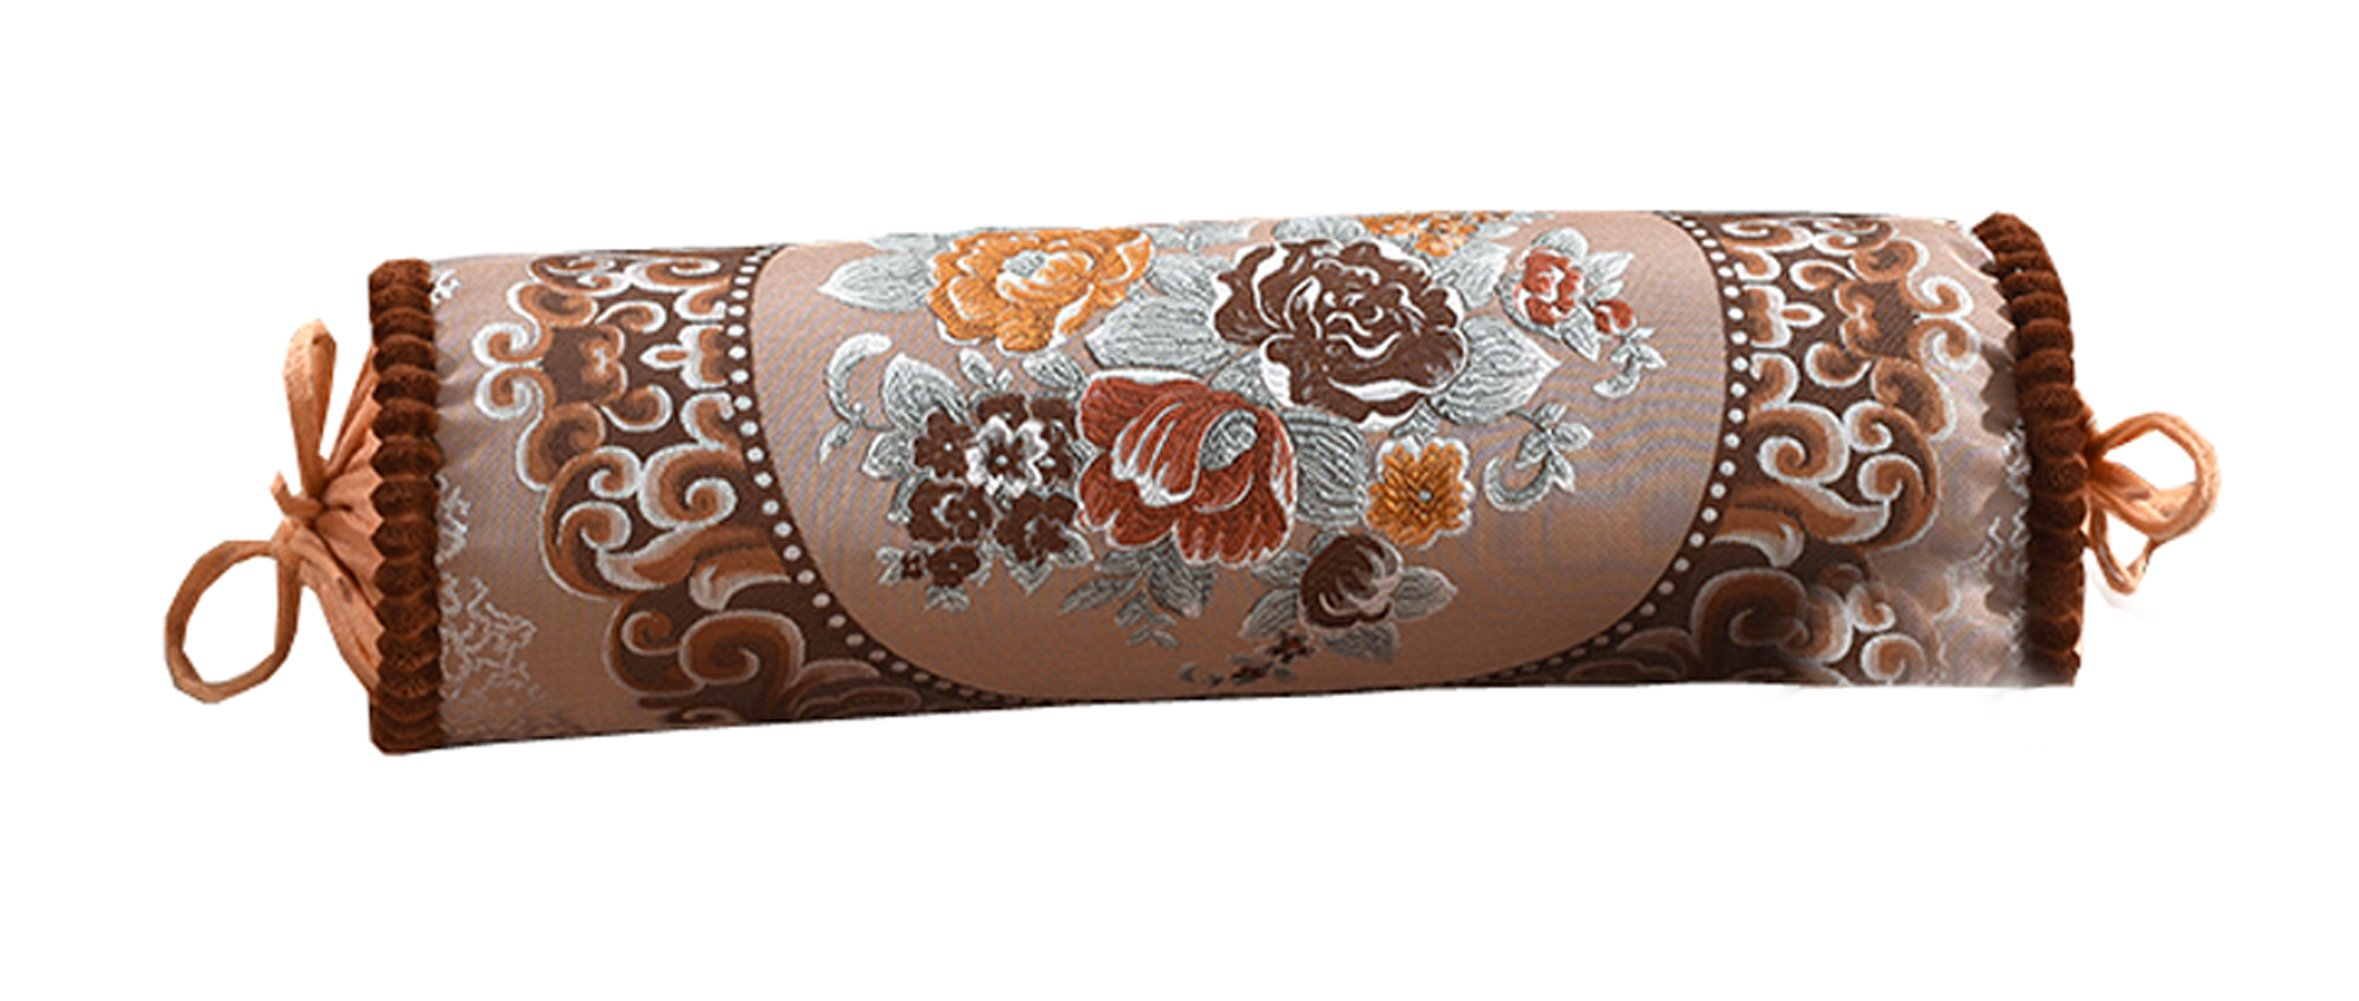 Peacewish Luxurious Europe Style Cylindrical Neck Pillow Cylinder Bolster Pillow Long Sofa Pillow Candy Pillow Nap Containing Core (Coffee)